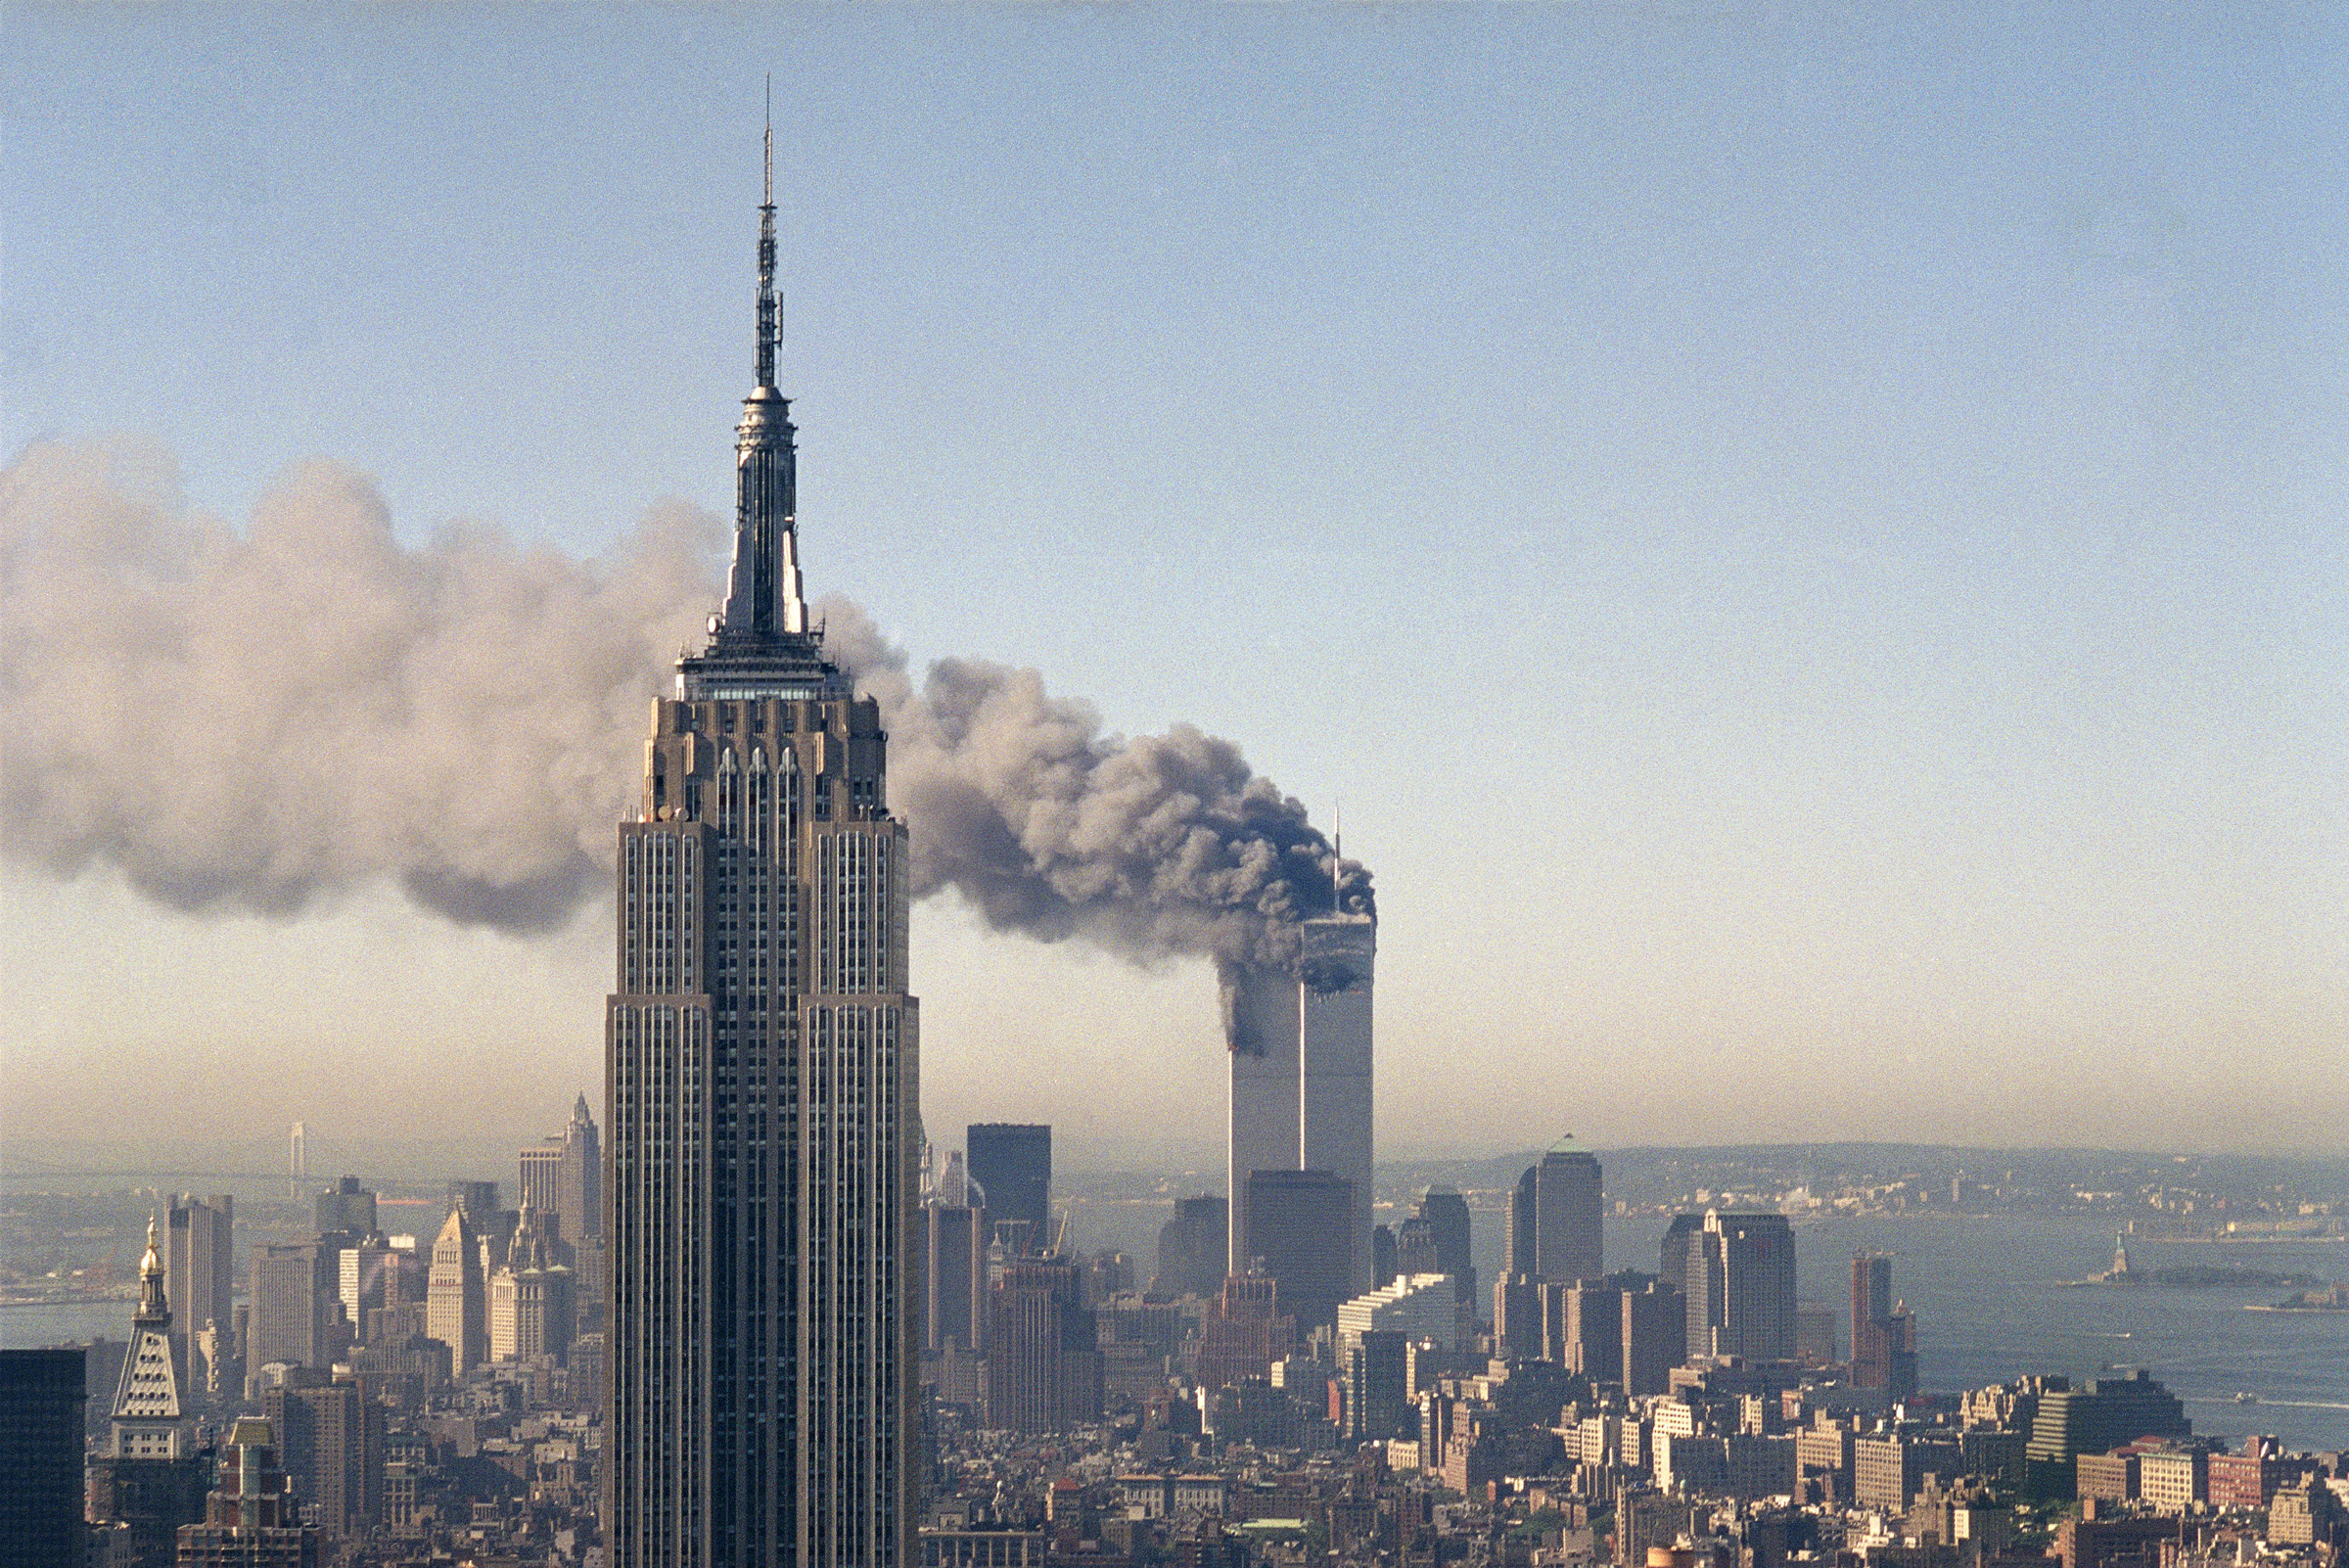 FBI Accidentally Leaks Identity Of Saudi Diplomat Suspected Of Assisting In 9/11 Attacks